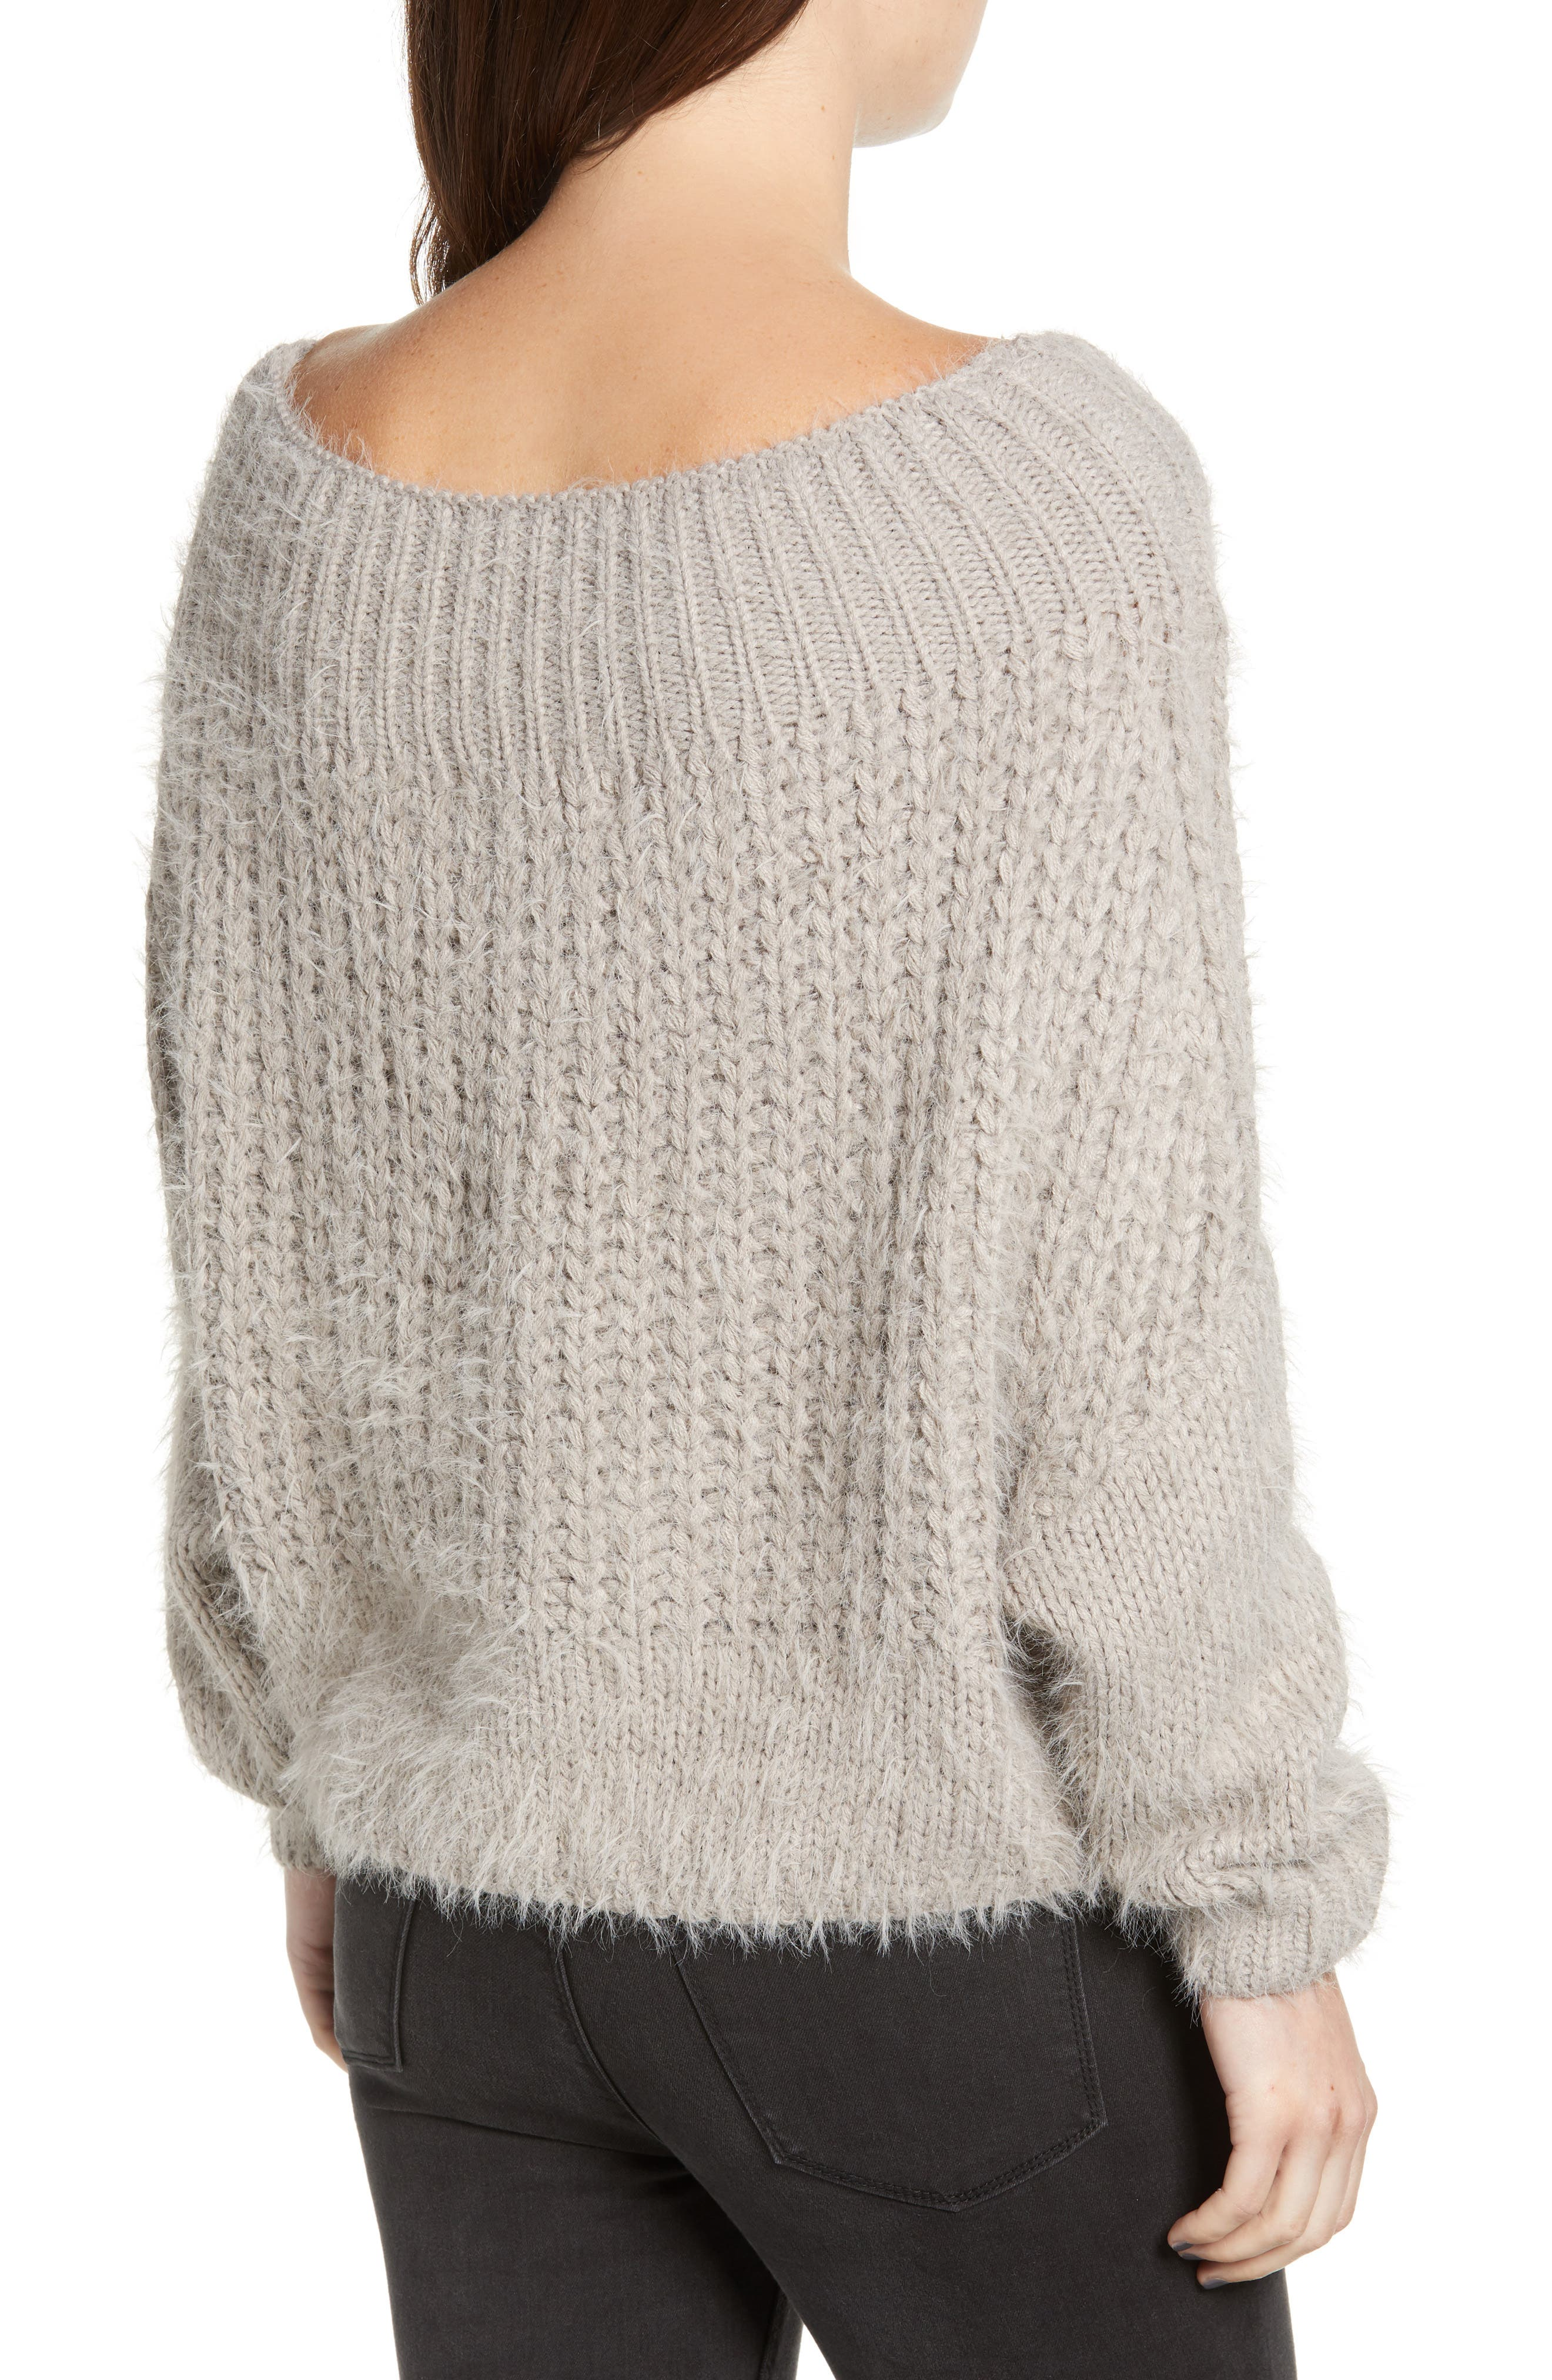 DREAMERS BY DEBUT,                             Boatneck Knit Pullover,                             Alternate thumbnail 2, color,                             MICRO GREY